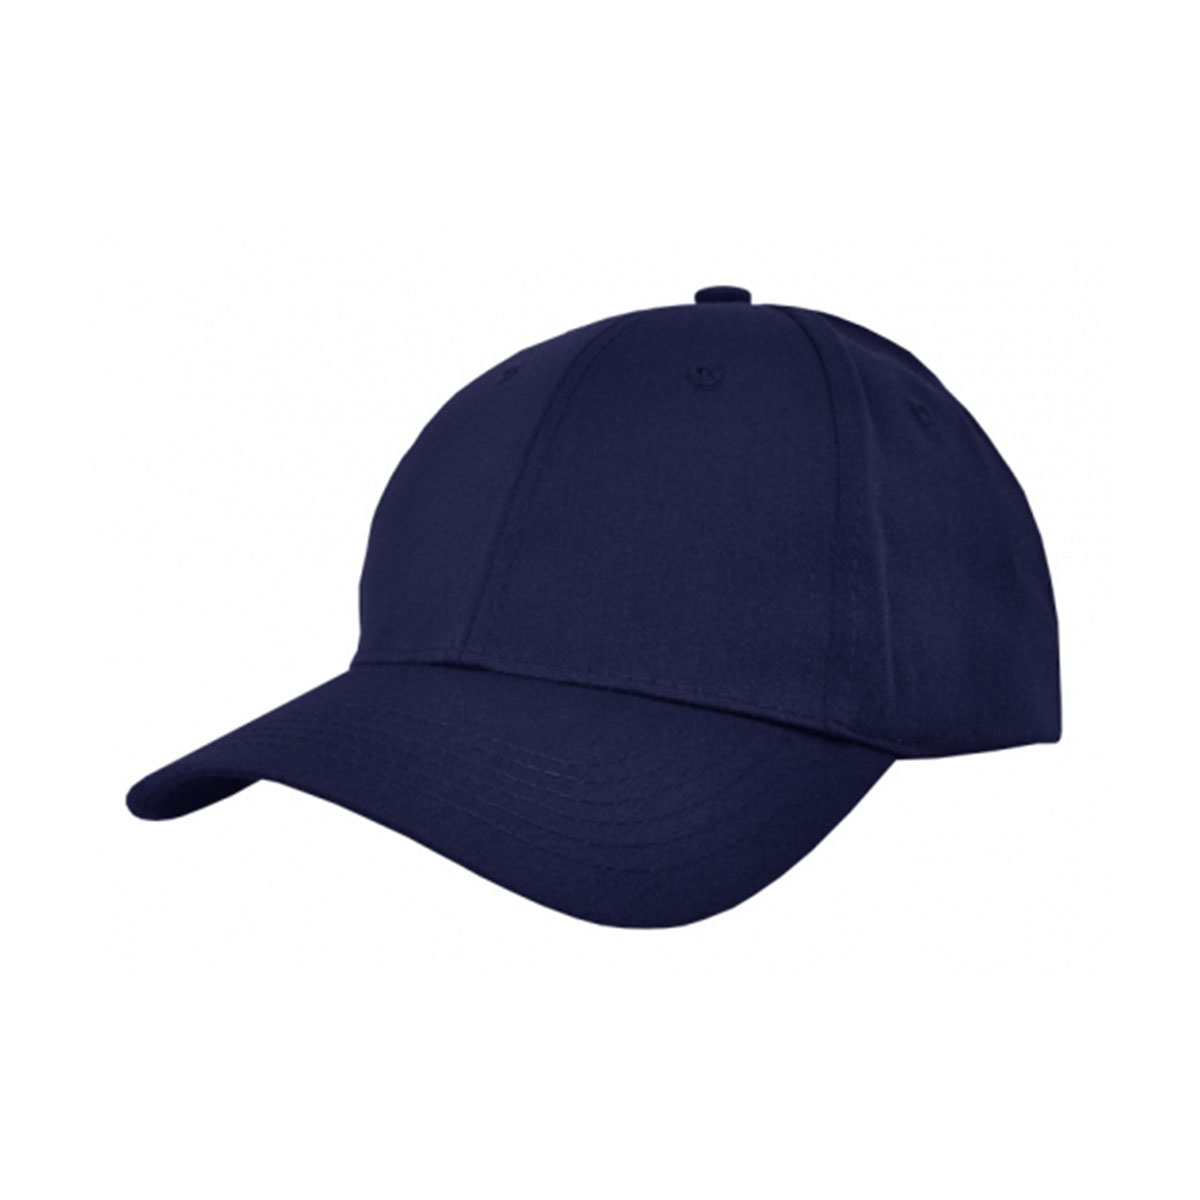 School Sports Cap-Navy